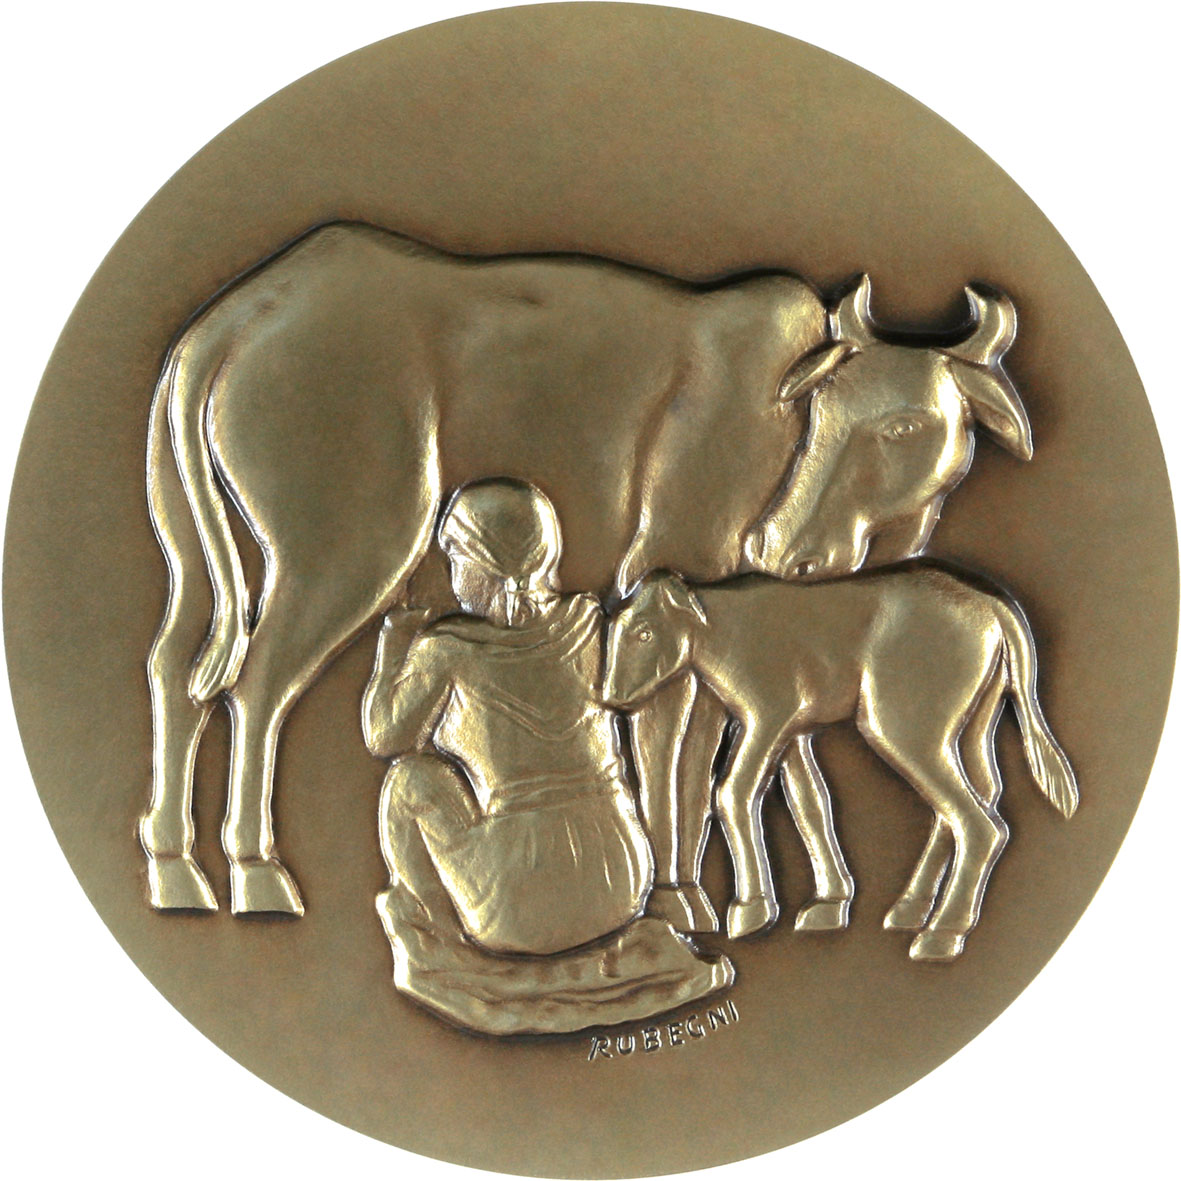 World Food Prize Medal